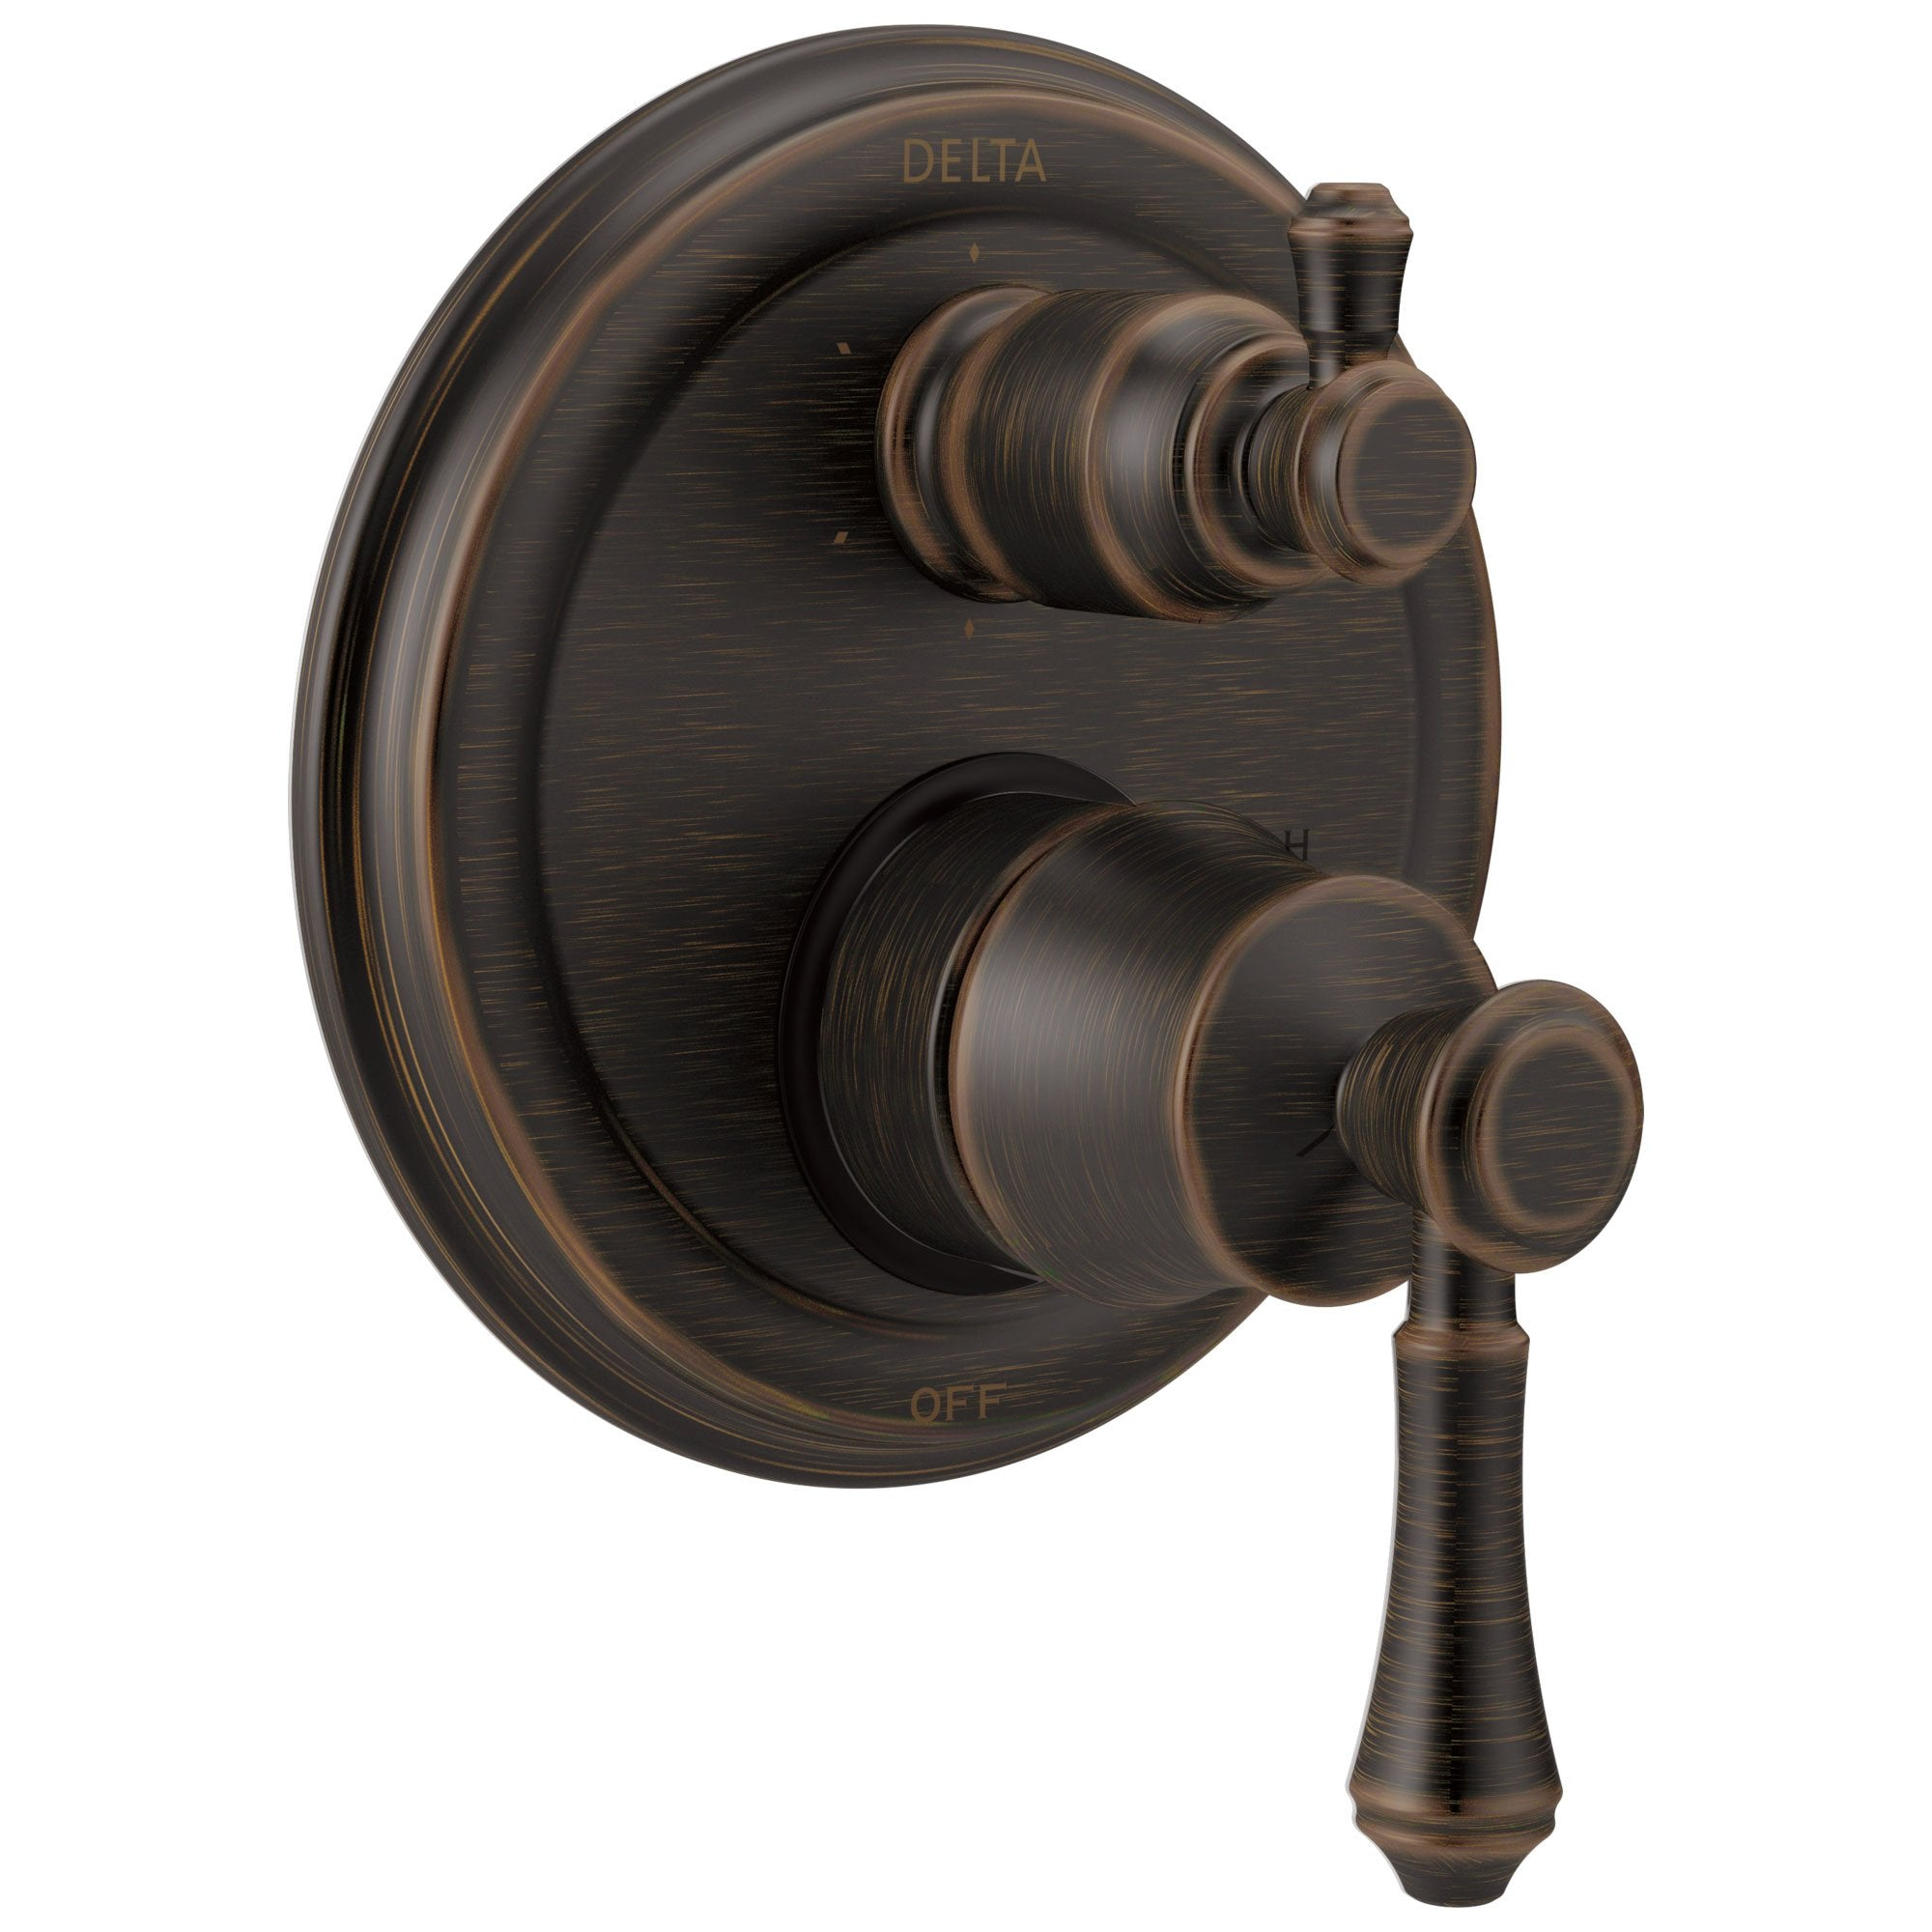 Delta Cassidy Venetian Bronze Traditional Shower Faucet Control Handle with 6-Setting Integrated Diverter Includes Trim Kit and Valve without Stops D2186V